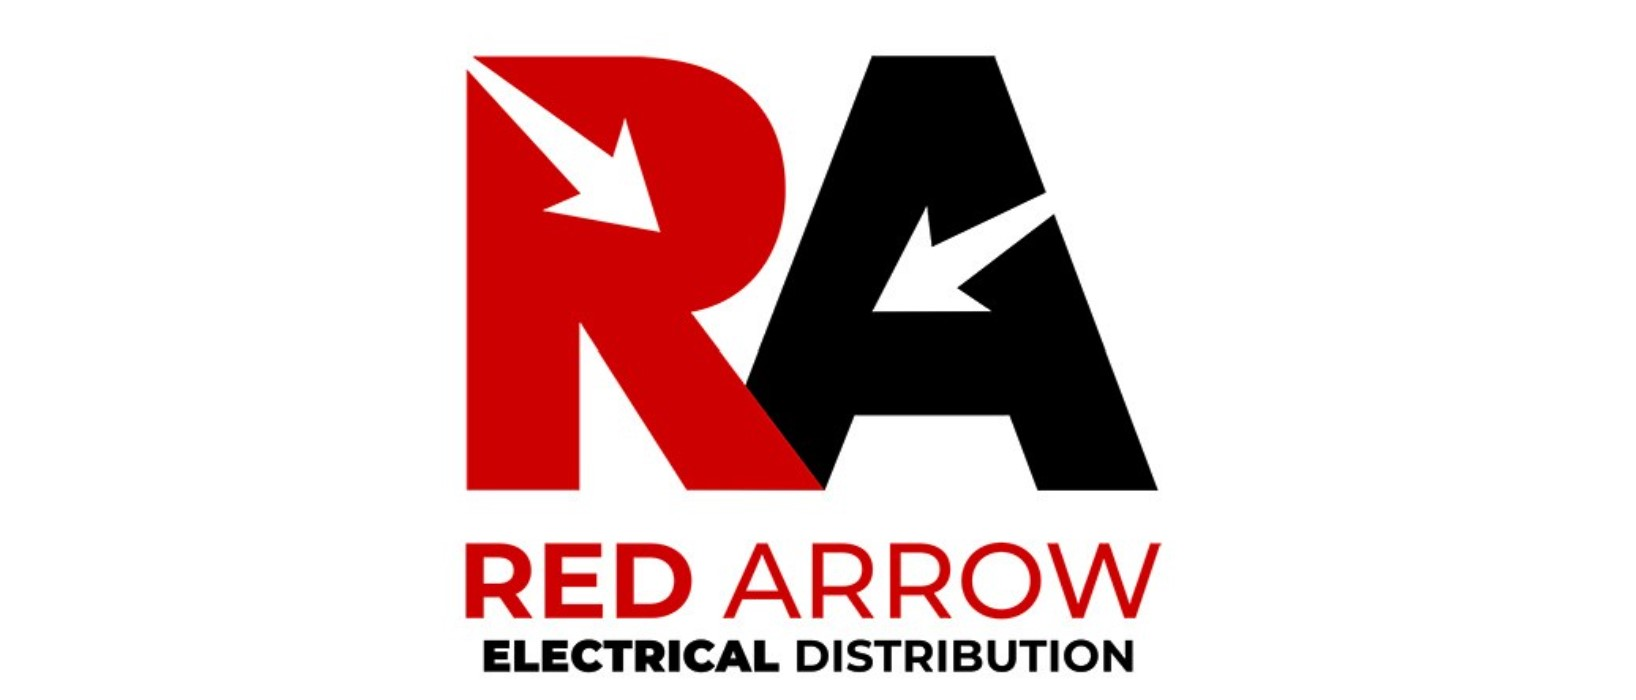 Red Arrow Sells Face Masks To Raise £100k For Charity